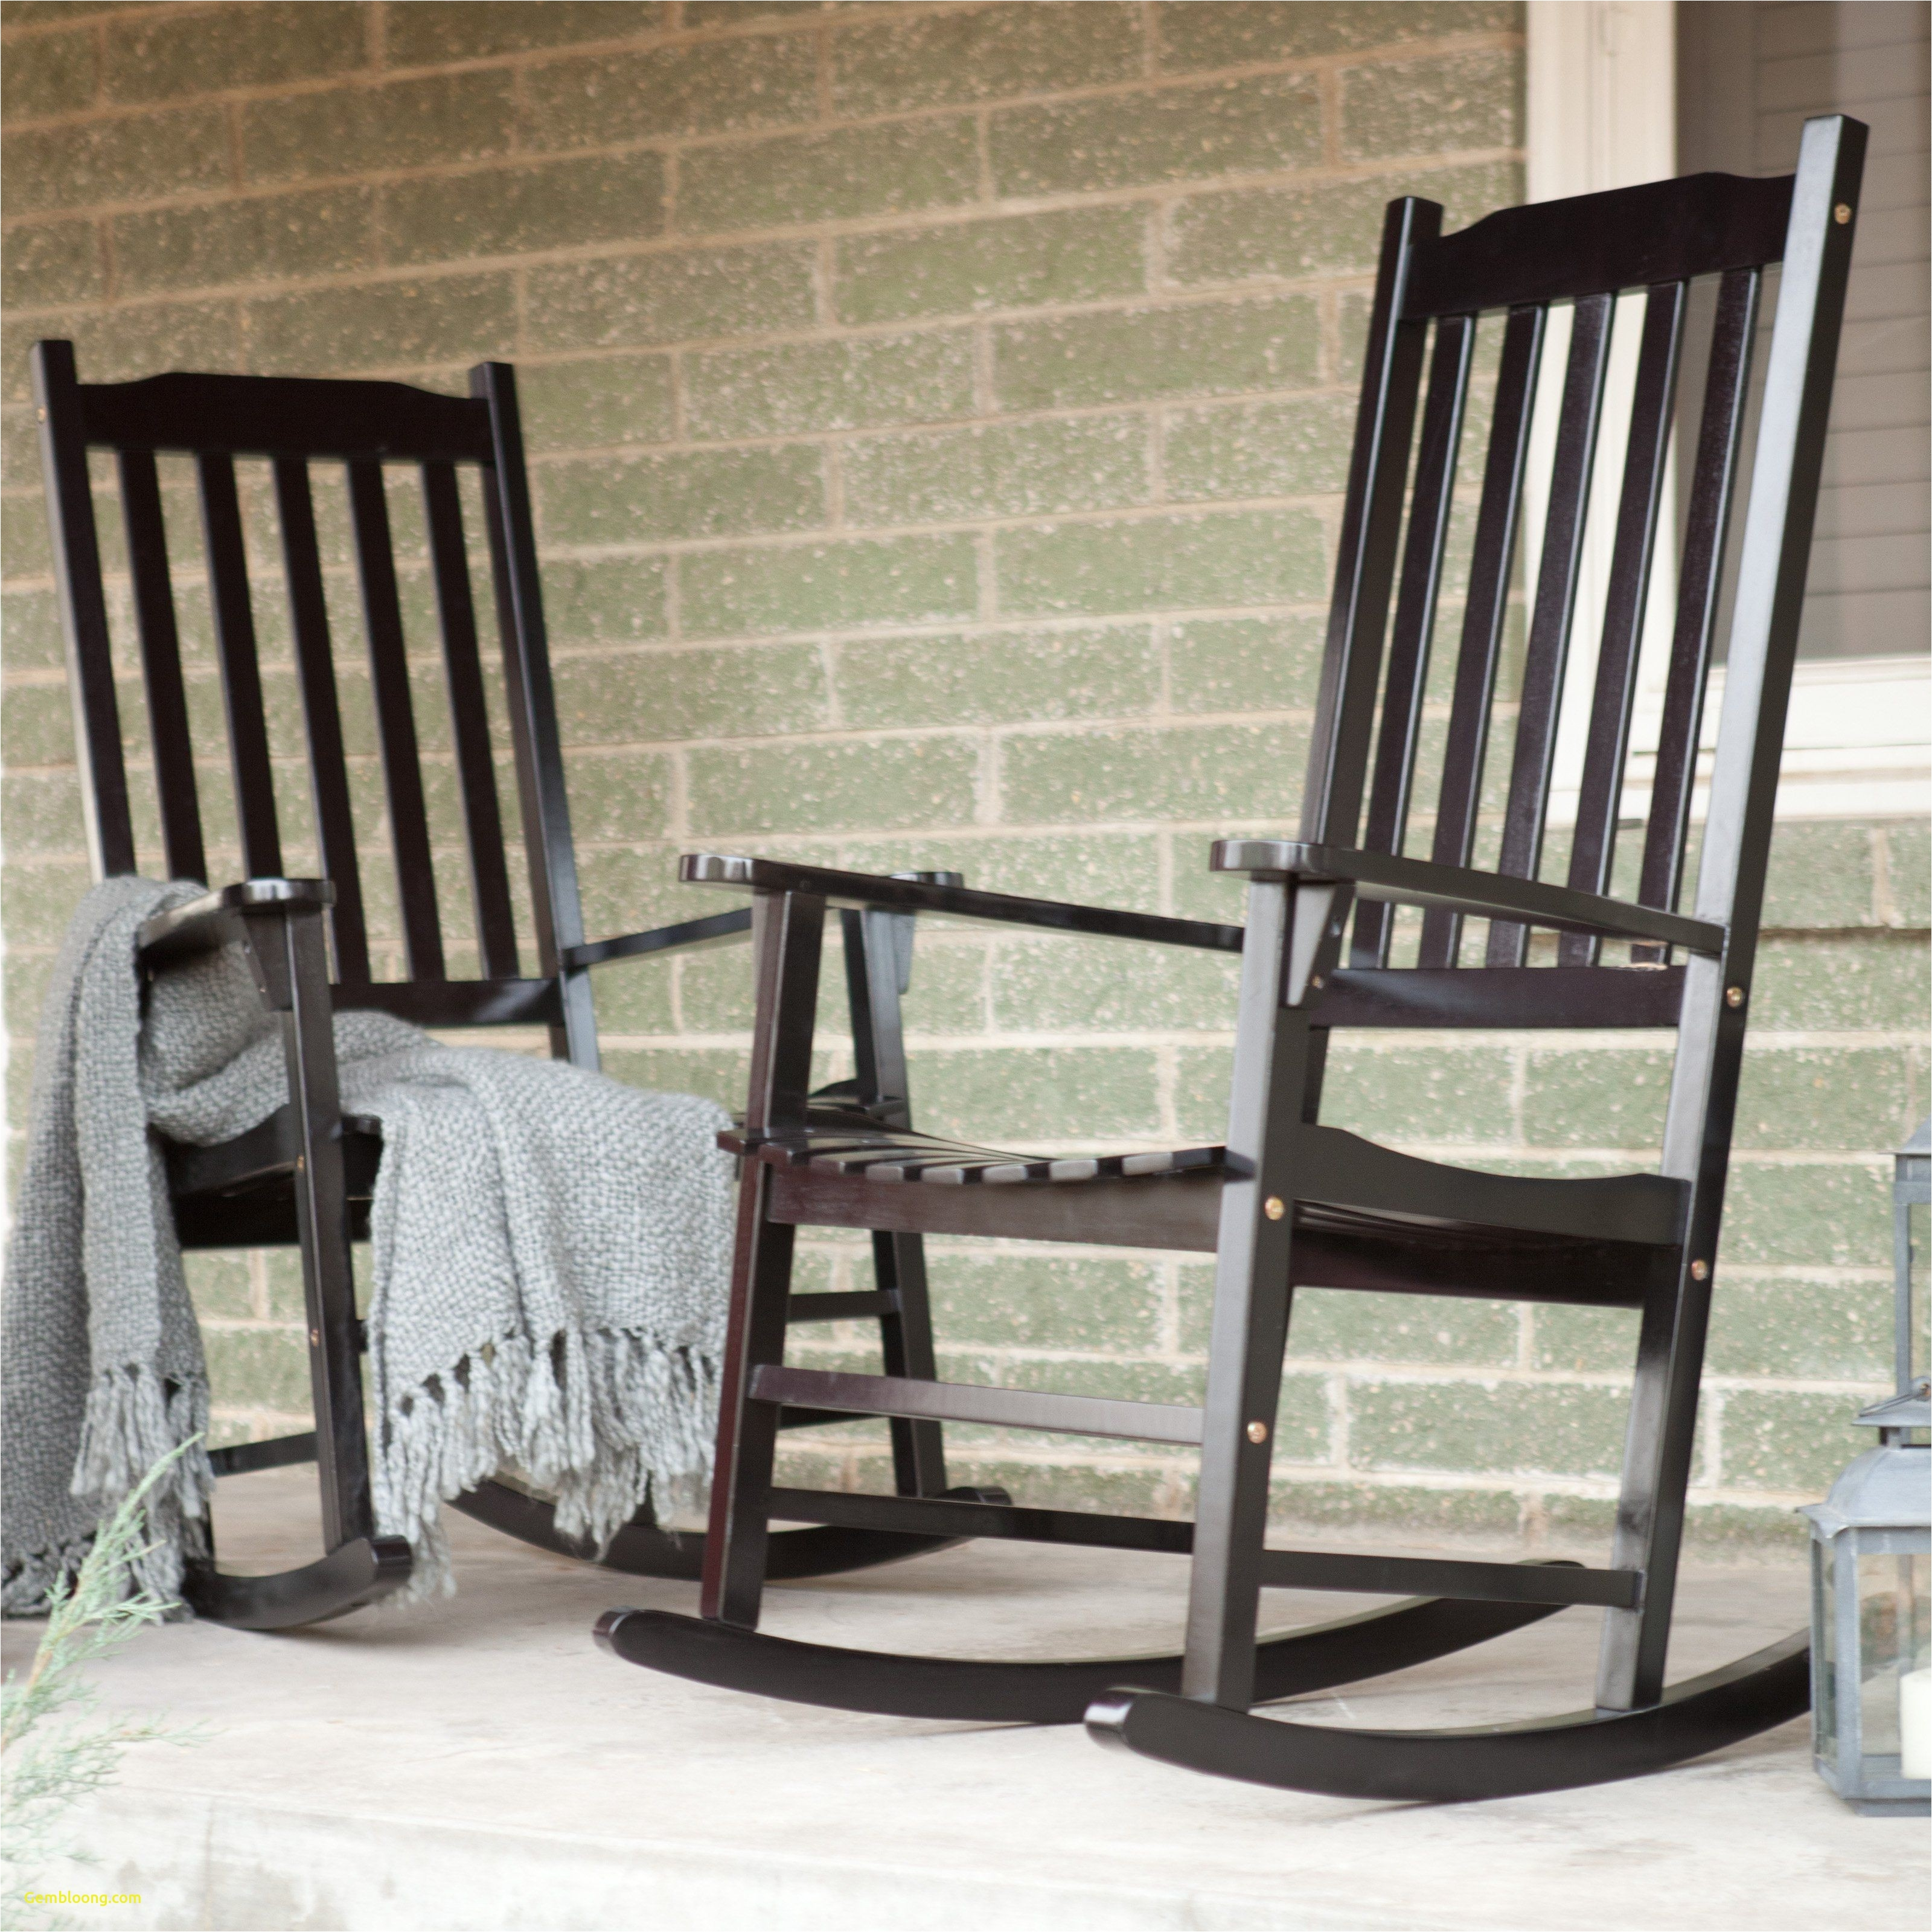 Kohls Outdoor Rocking Chair Home Design Rocking Patio Chairs Inspirational Outdoor Patio